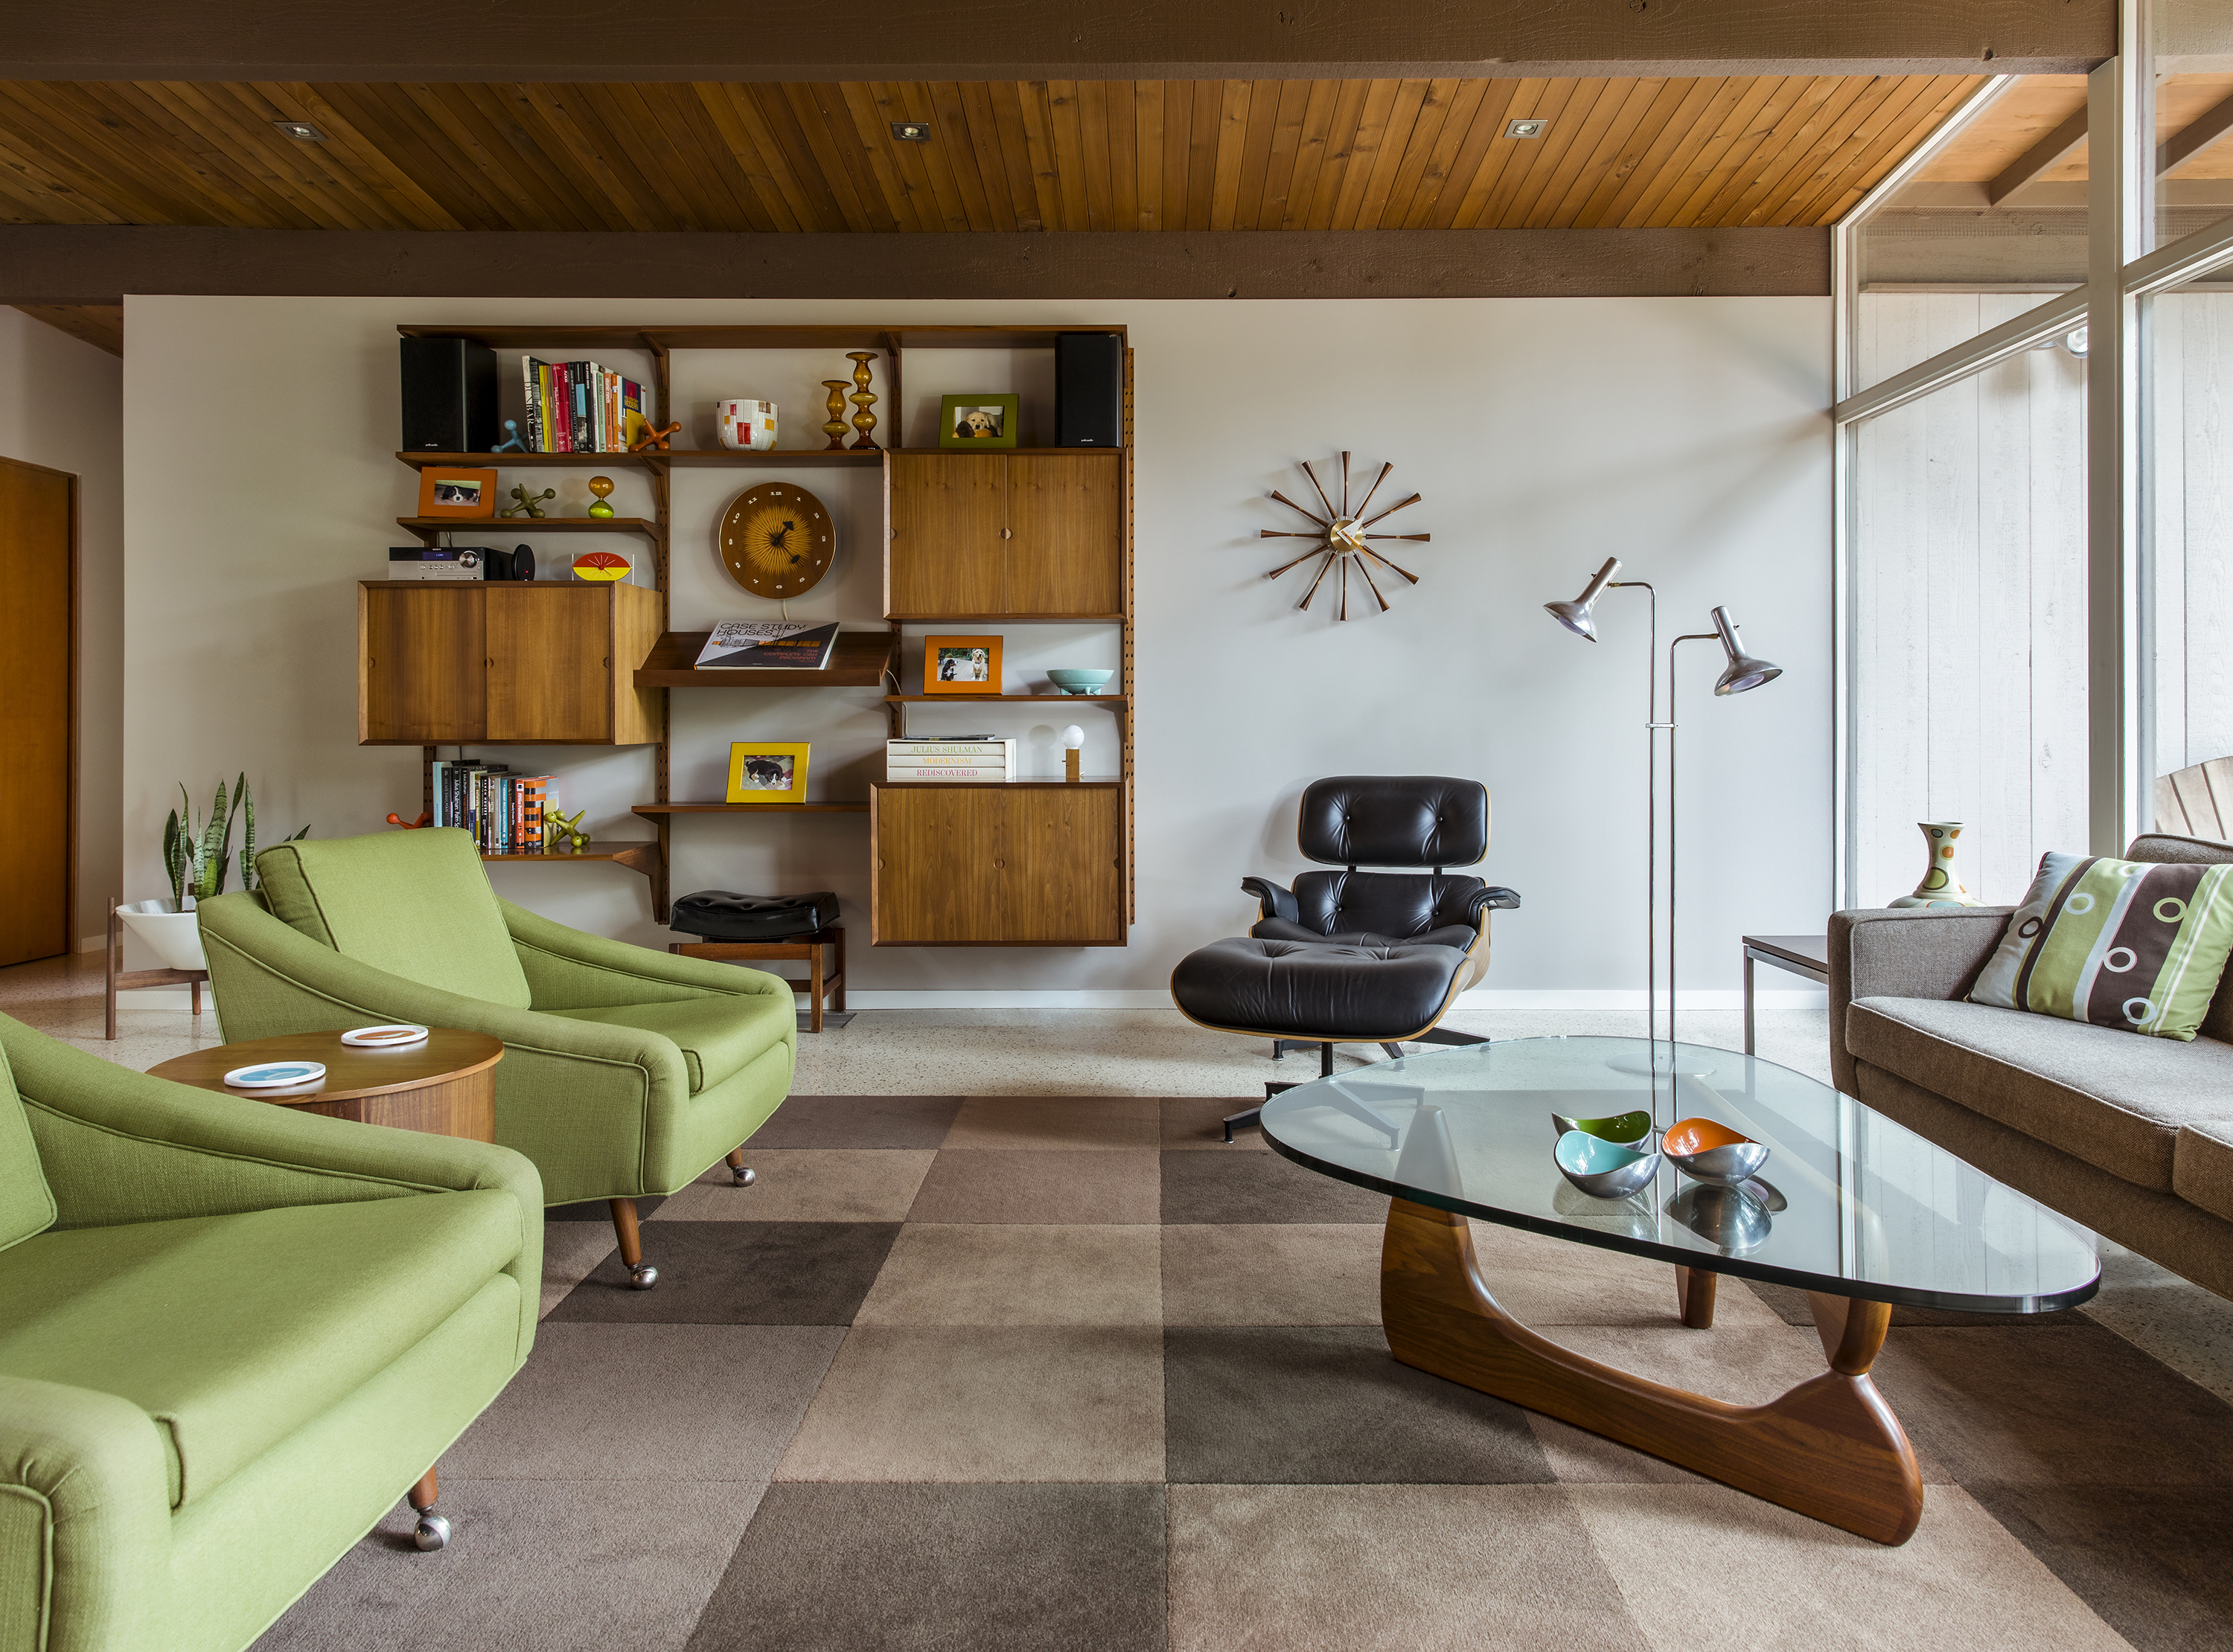 Midcentury Modern Furniture: Where To Buy It   Curbed